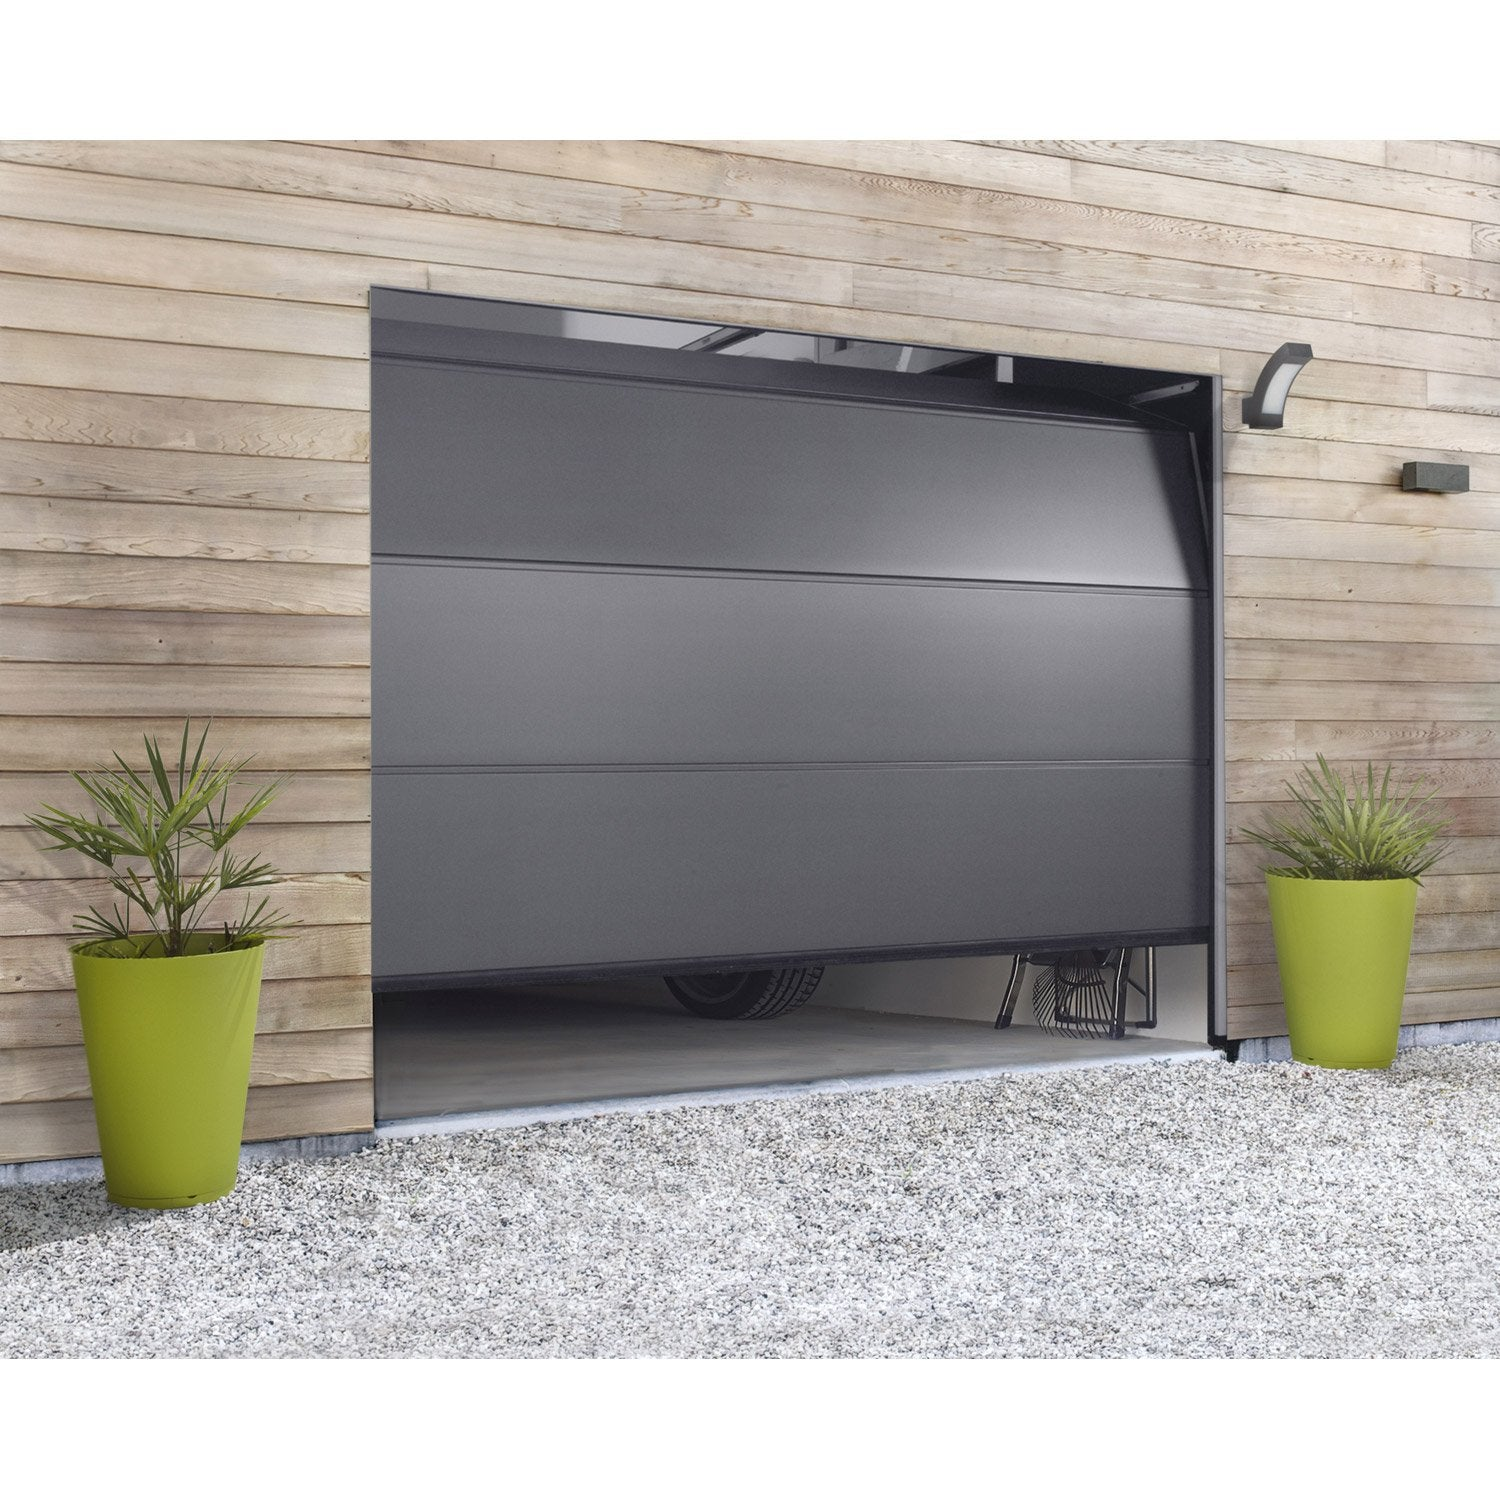 Porte entree hormann leroy merlin pm27 jornalagora for Porte de garage sectionnelle soprofen